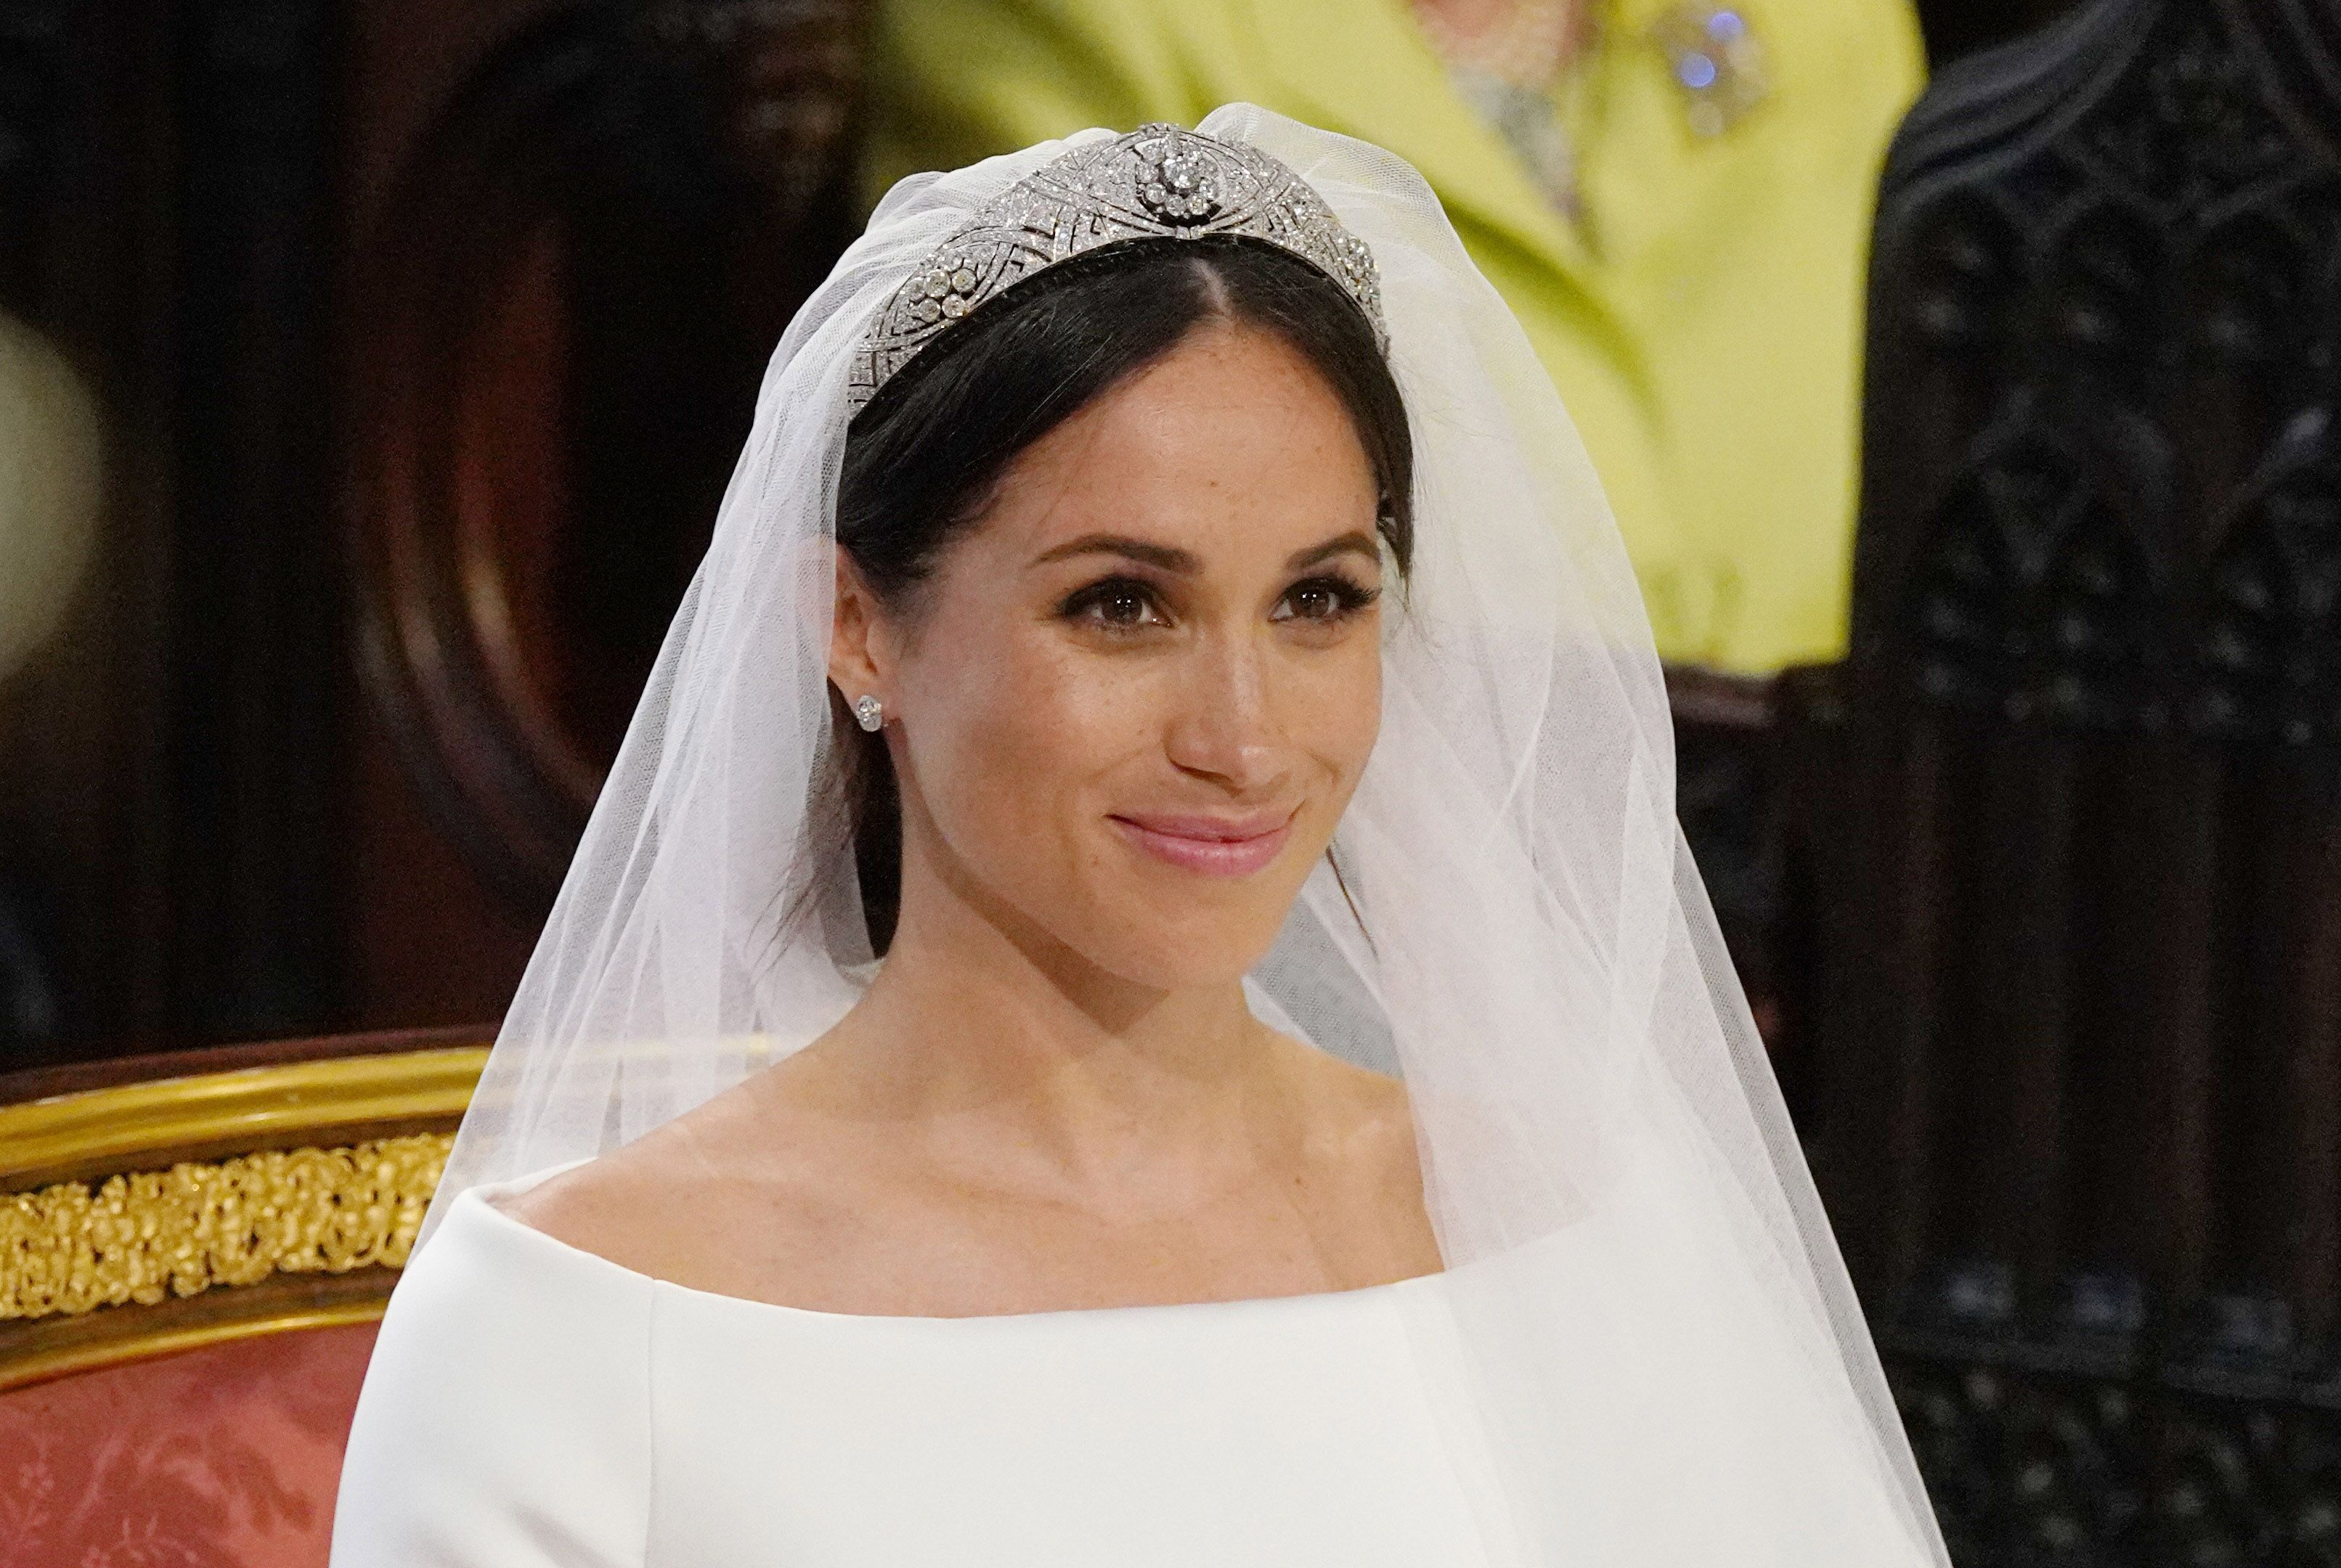 Meghan Markle Royal Wedding Tiara First Look At Tiara Markle Wears